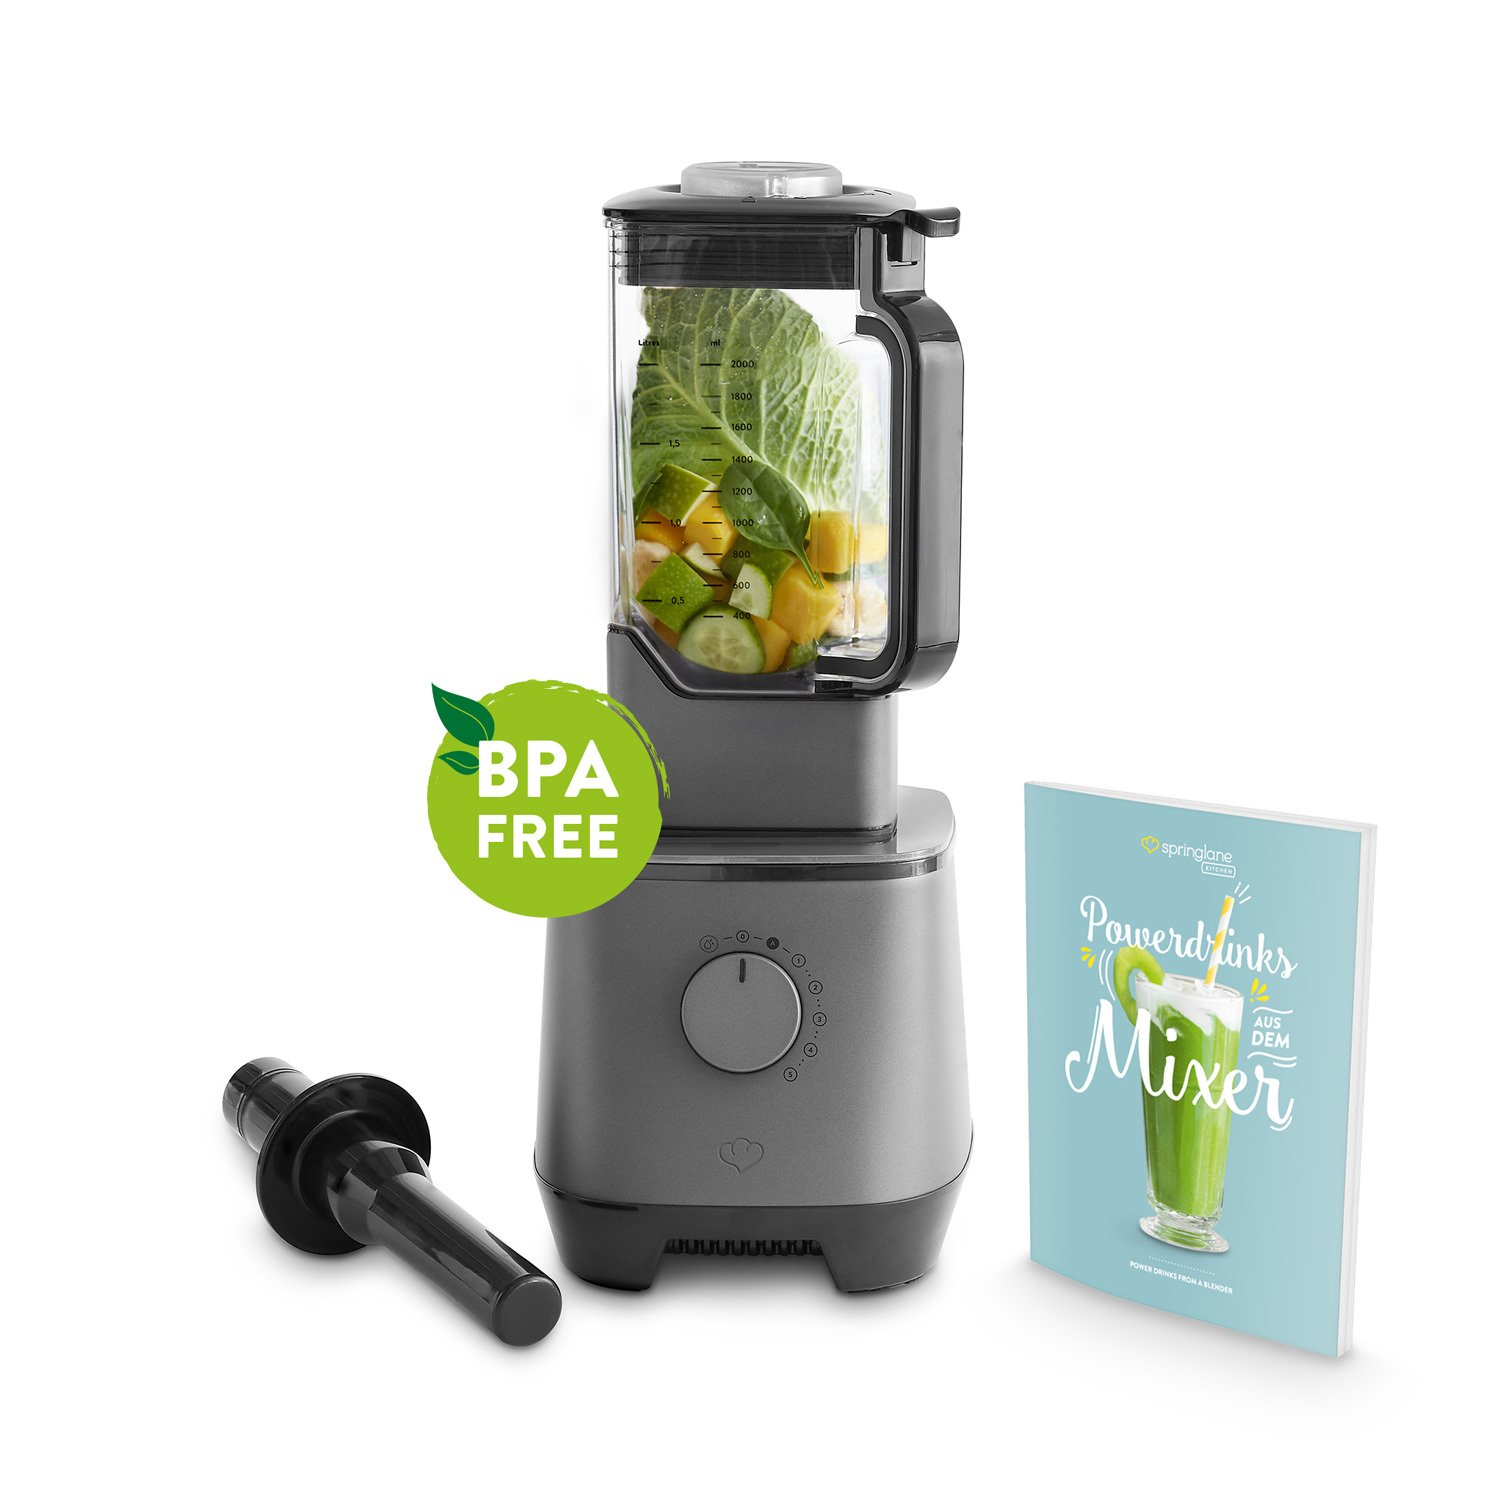 Power Blender 2 L by Springlane Kitchen - 2000W, Smoothie Maker: Mixing, Griding, Pulsing & Crushing Ice